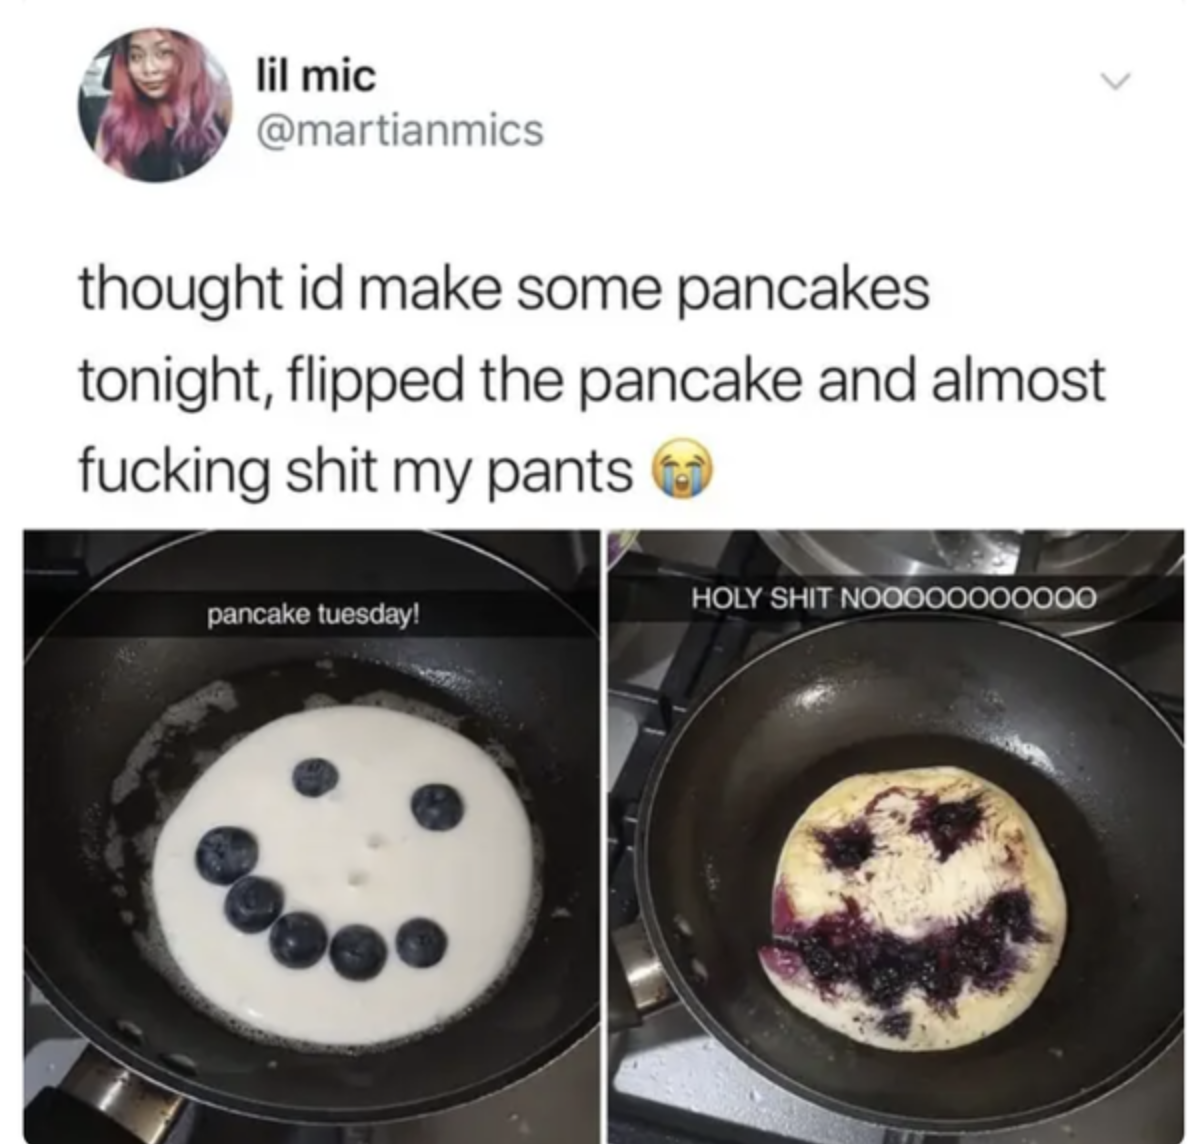 blueberry pancakes with a scary face